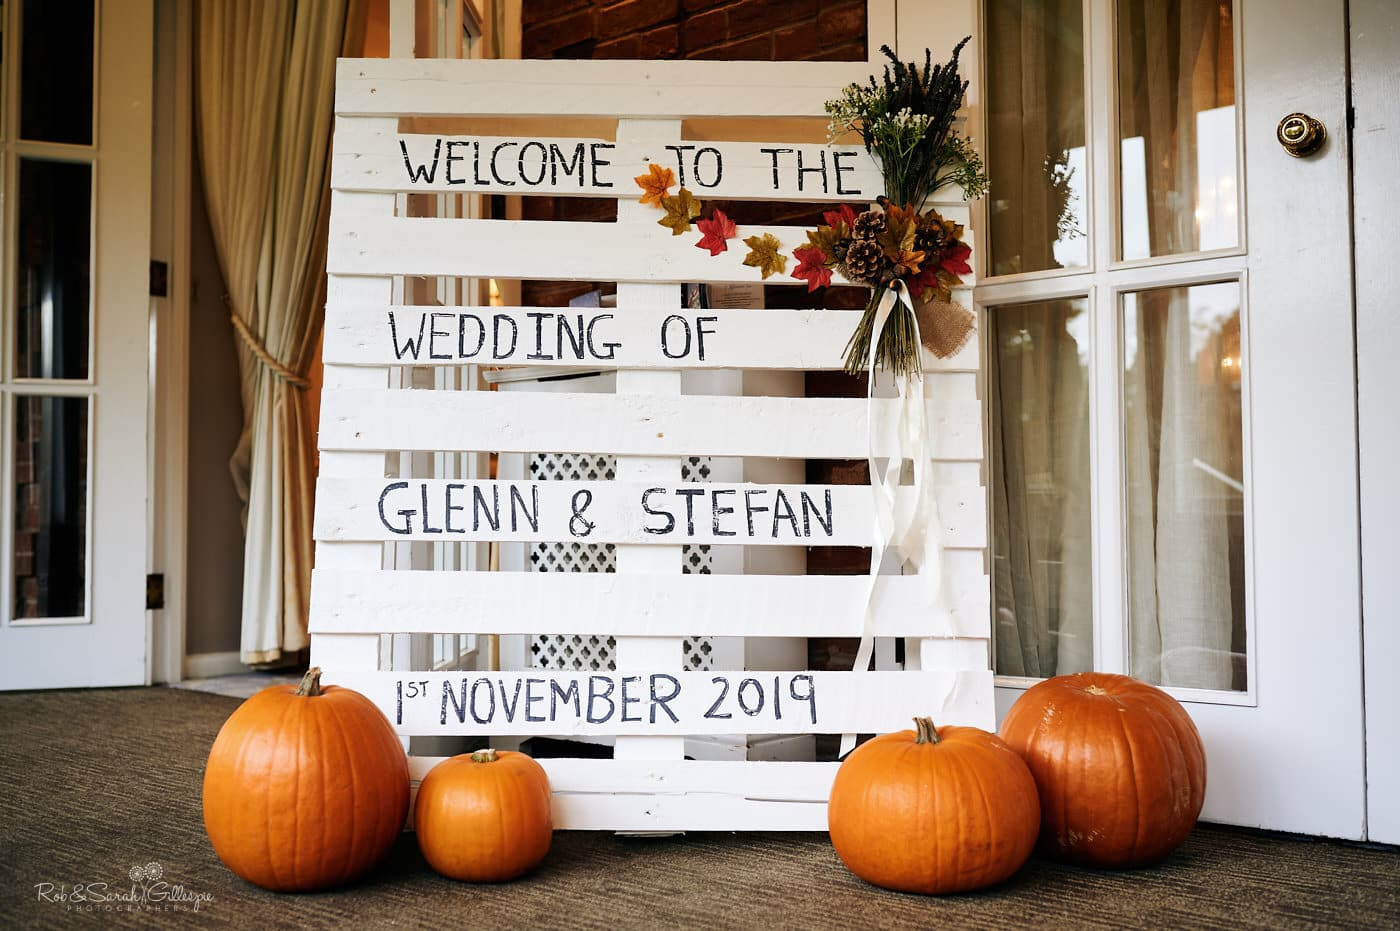 Welcome sign for wedding at Moor Hall Hotel with decorative pumpkins and flowers